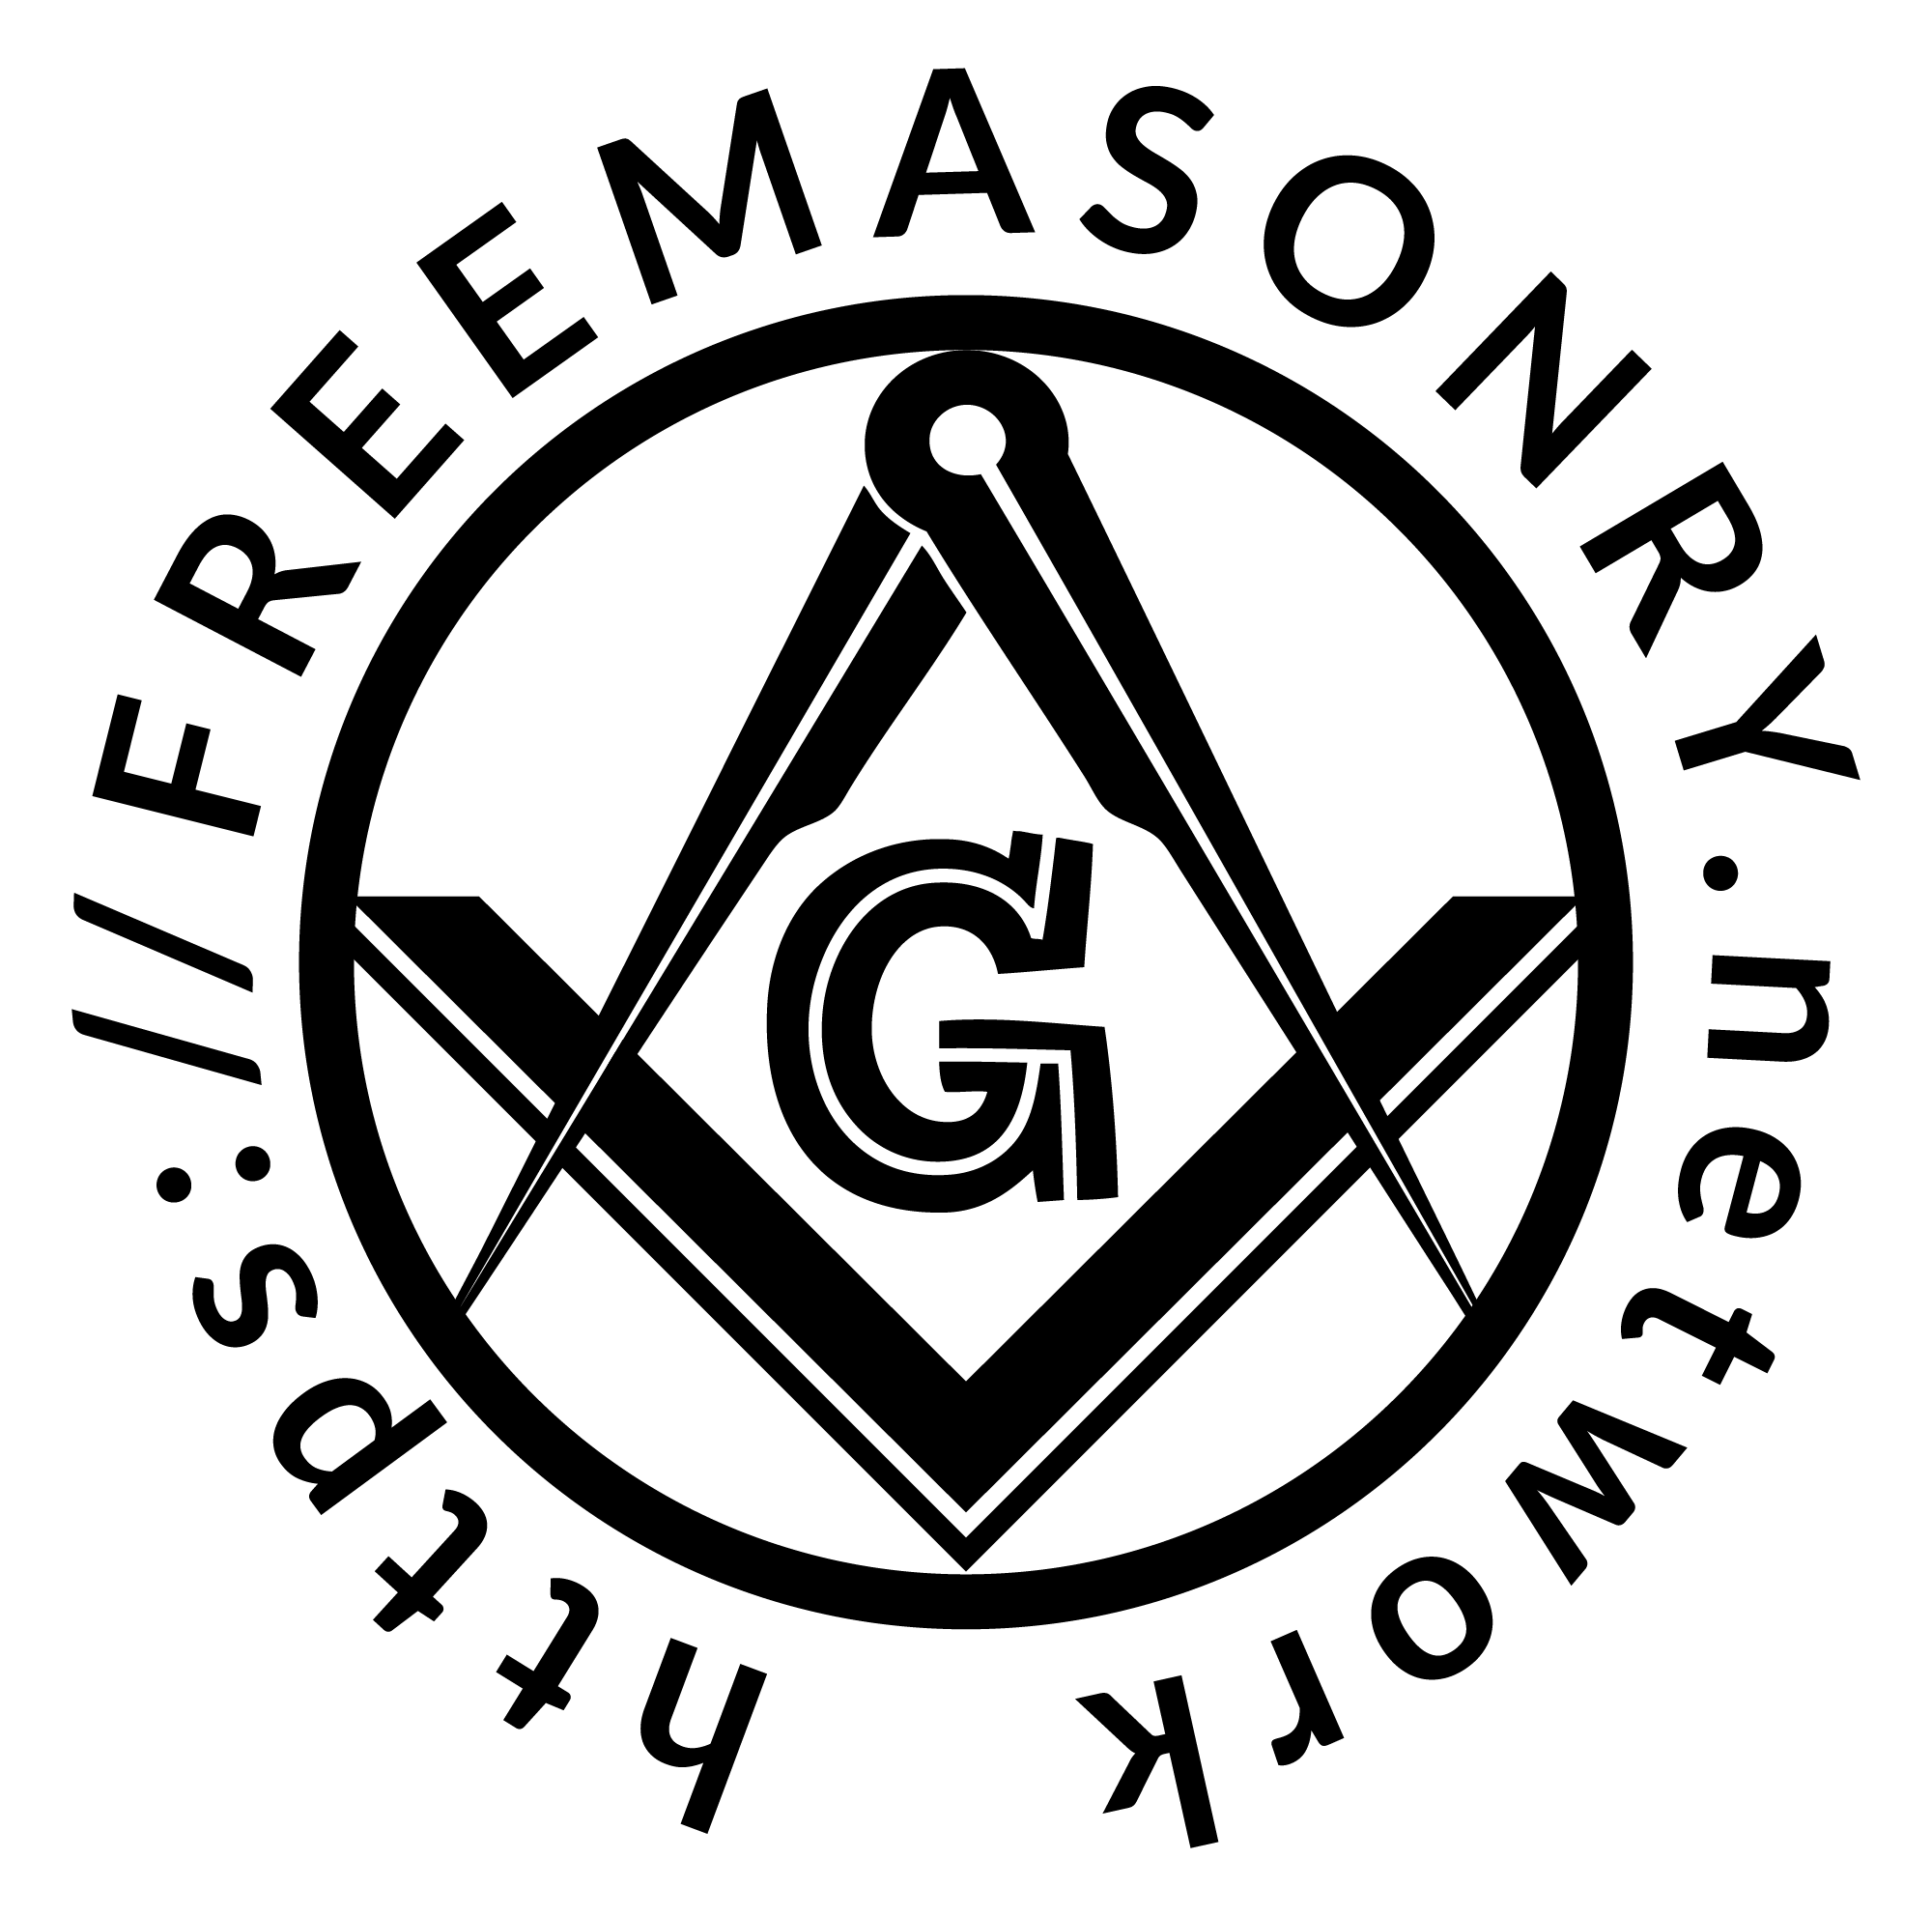 HISTORY OF THE MASONIC CONCEPT OF THE GAOTU